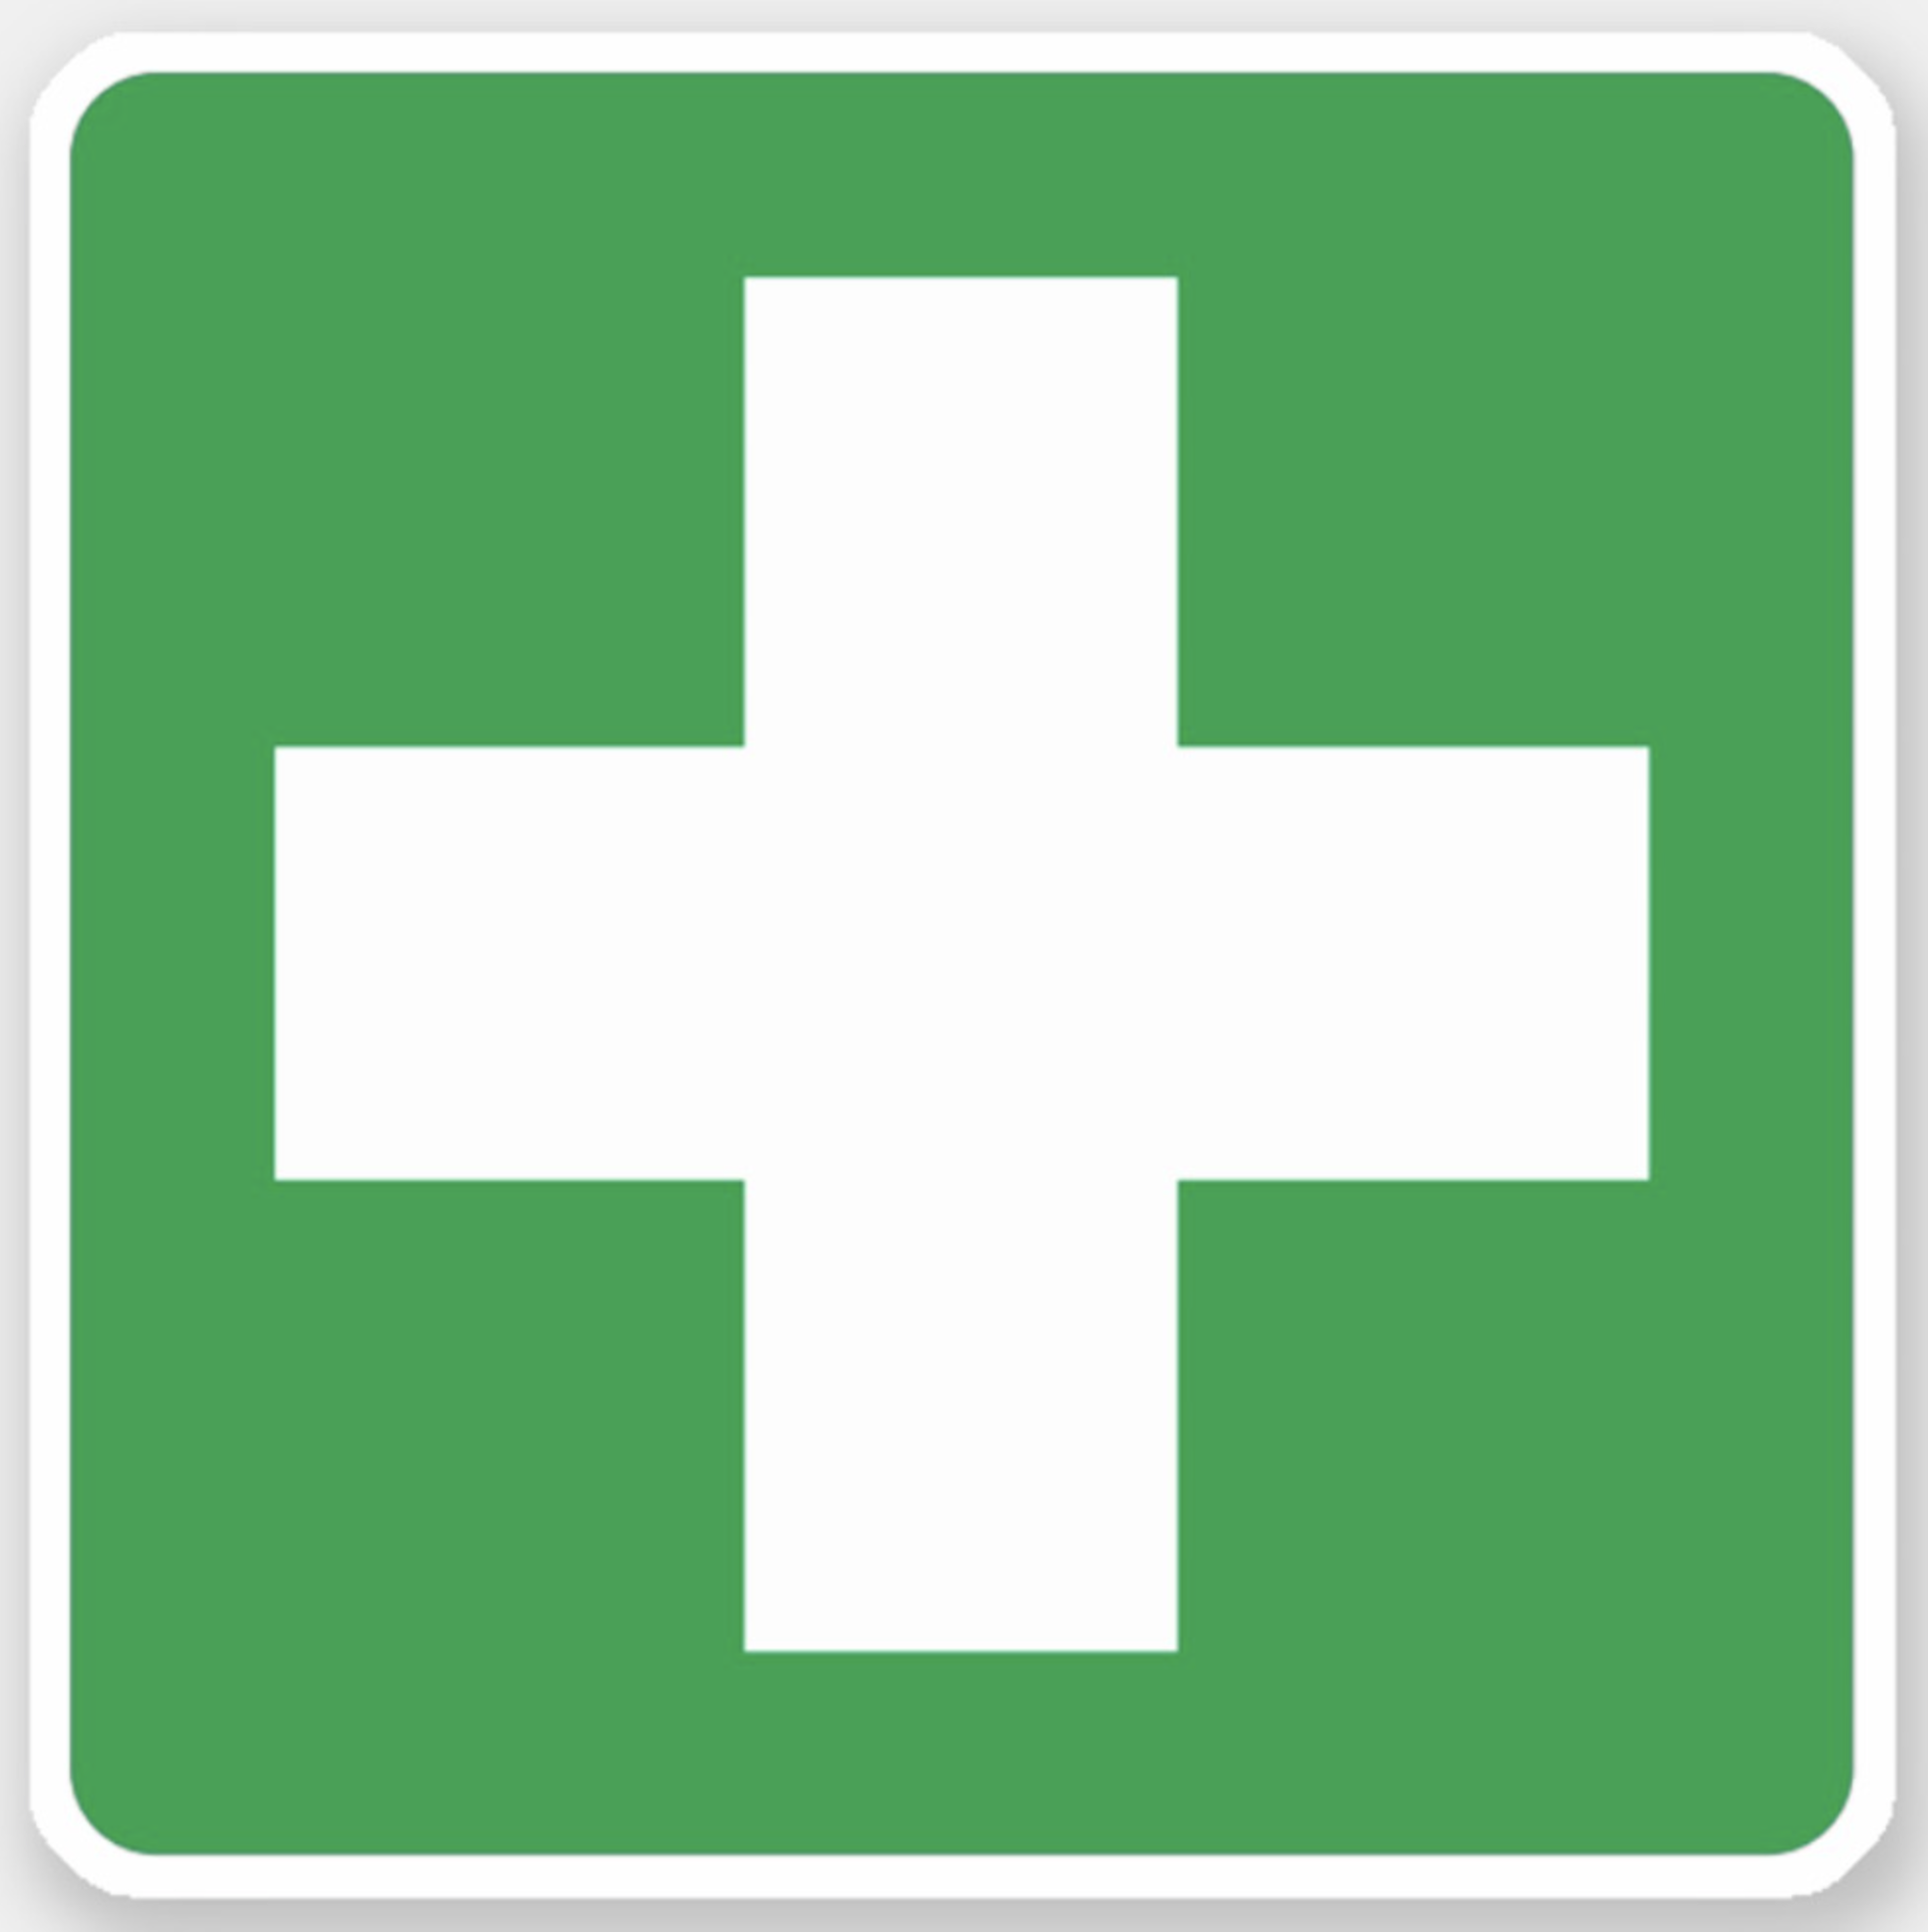 First Aid Symbol Stickers White Cross On Green Sticker Zazzle Com In 2020 Green Sticker White Crosses Symbols